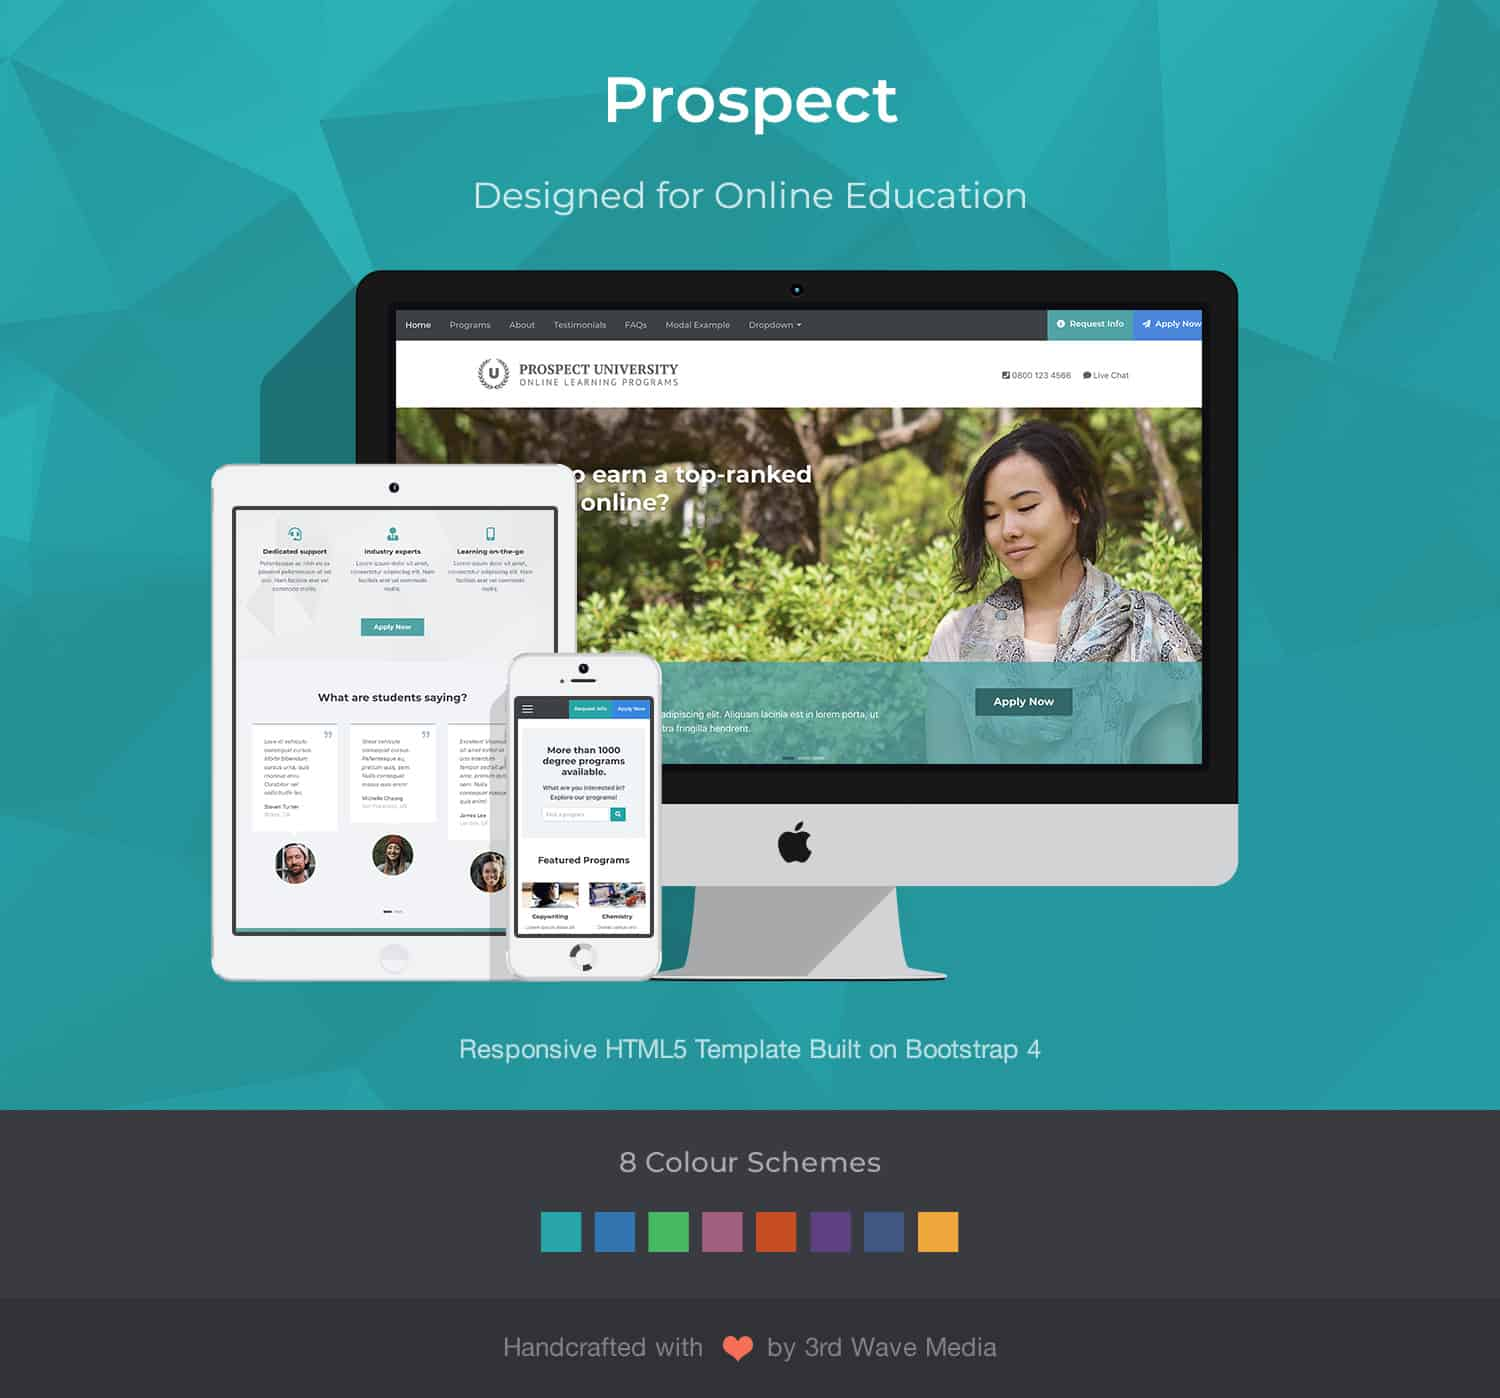 Bootstrap-Education-Landing-Page-Template-Prospect-Promo